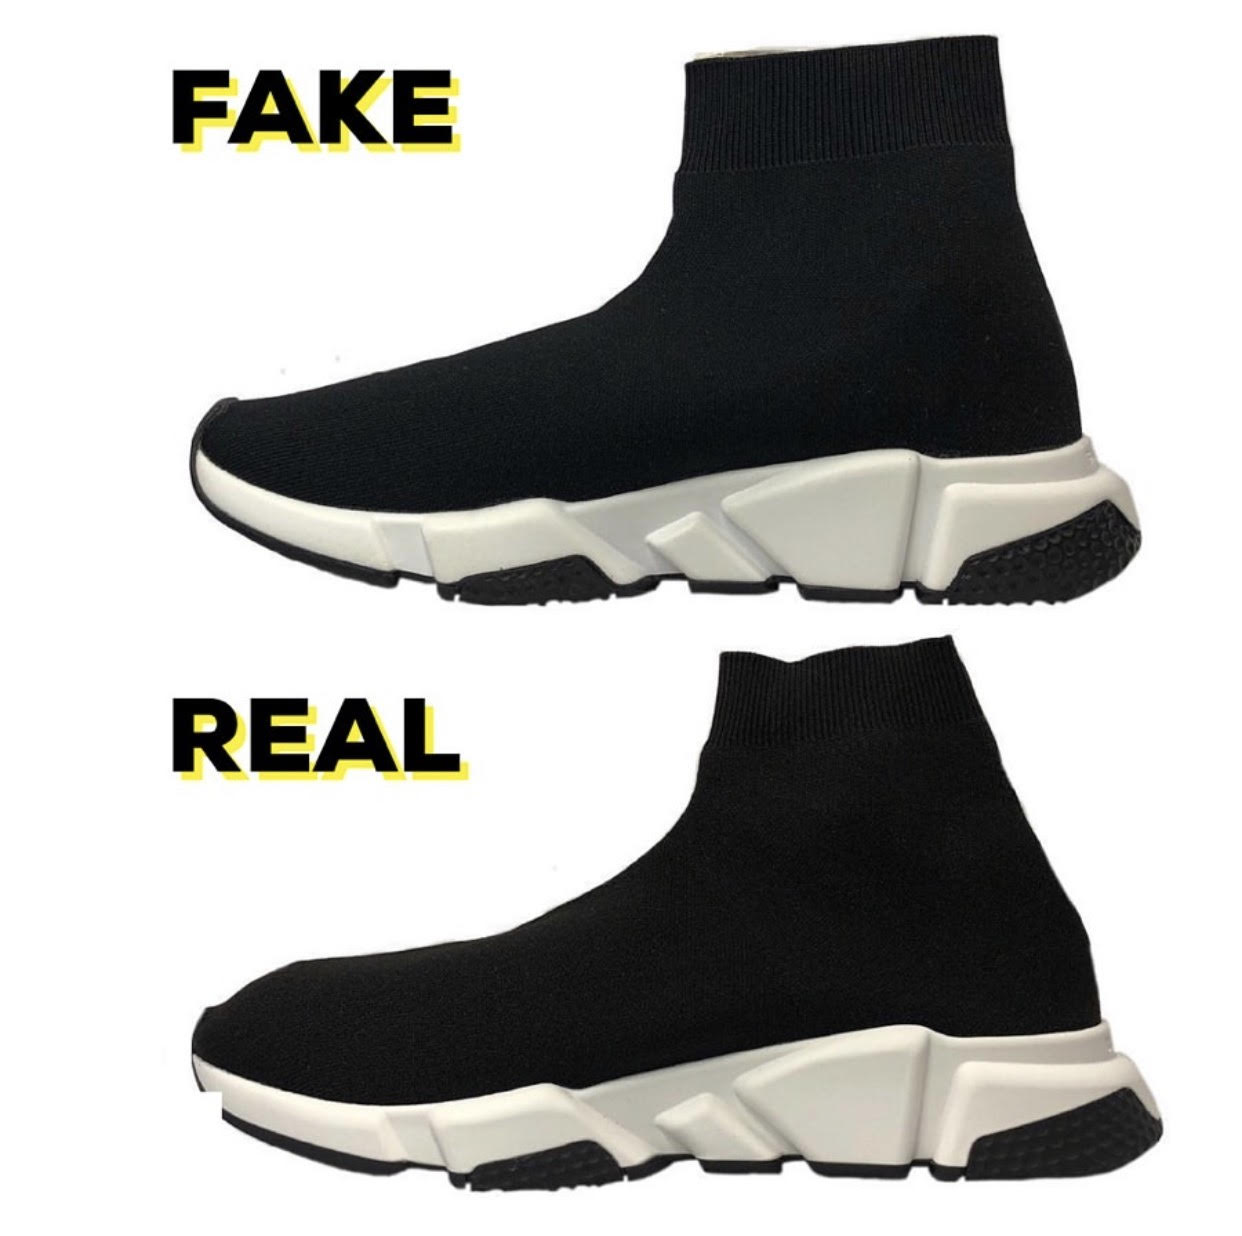 Fake Blogger Spot Jquspvglmz Brands Speed To How Balenciaga Trainers XuOkZiPT